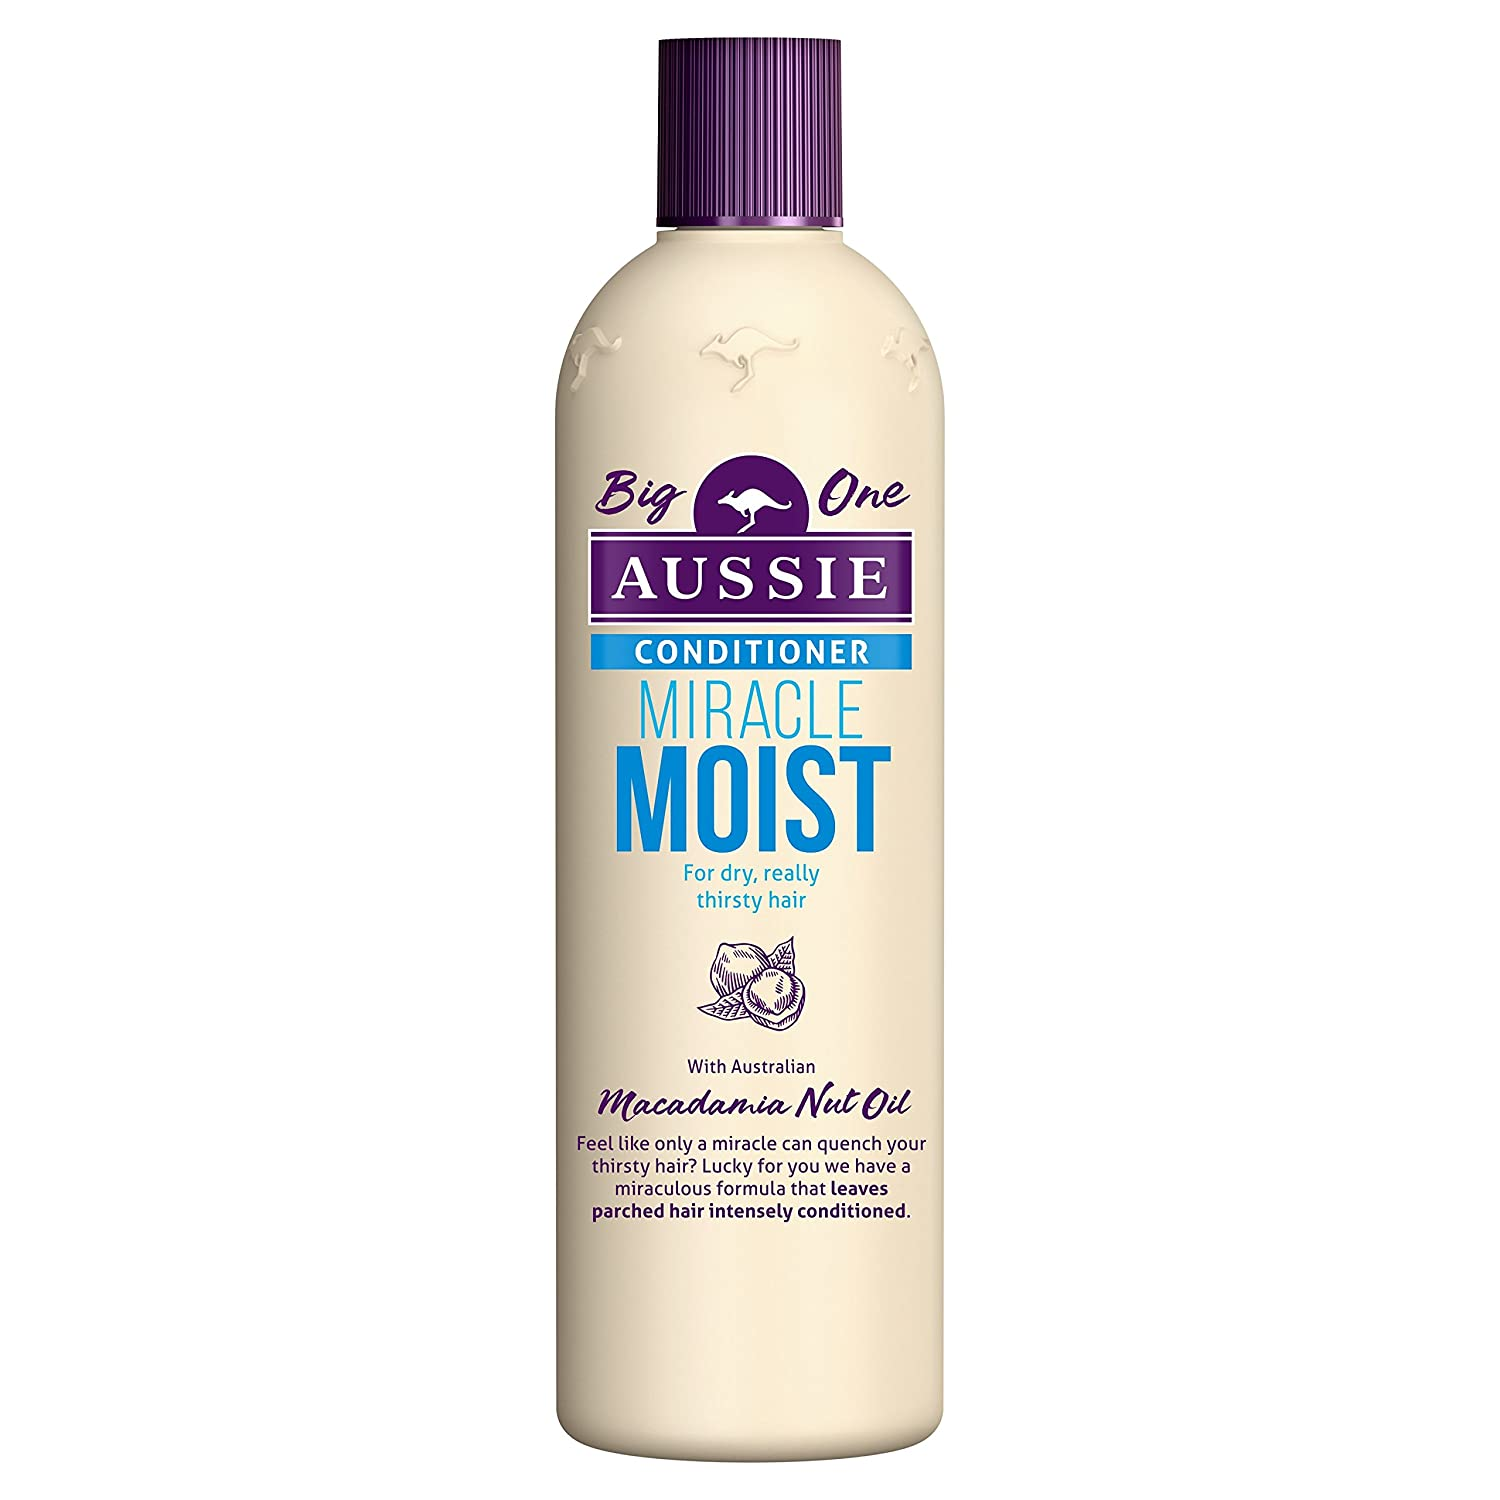 Aussie Miracle Moist Conditioner for Dry, Really Thirsty Hair, 400 ml Procter & Gamble 104210926